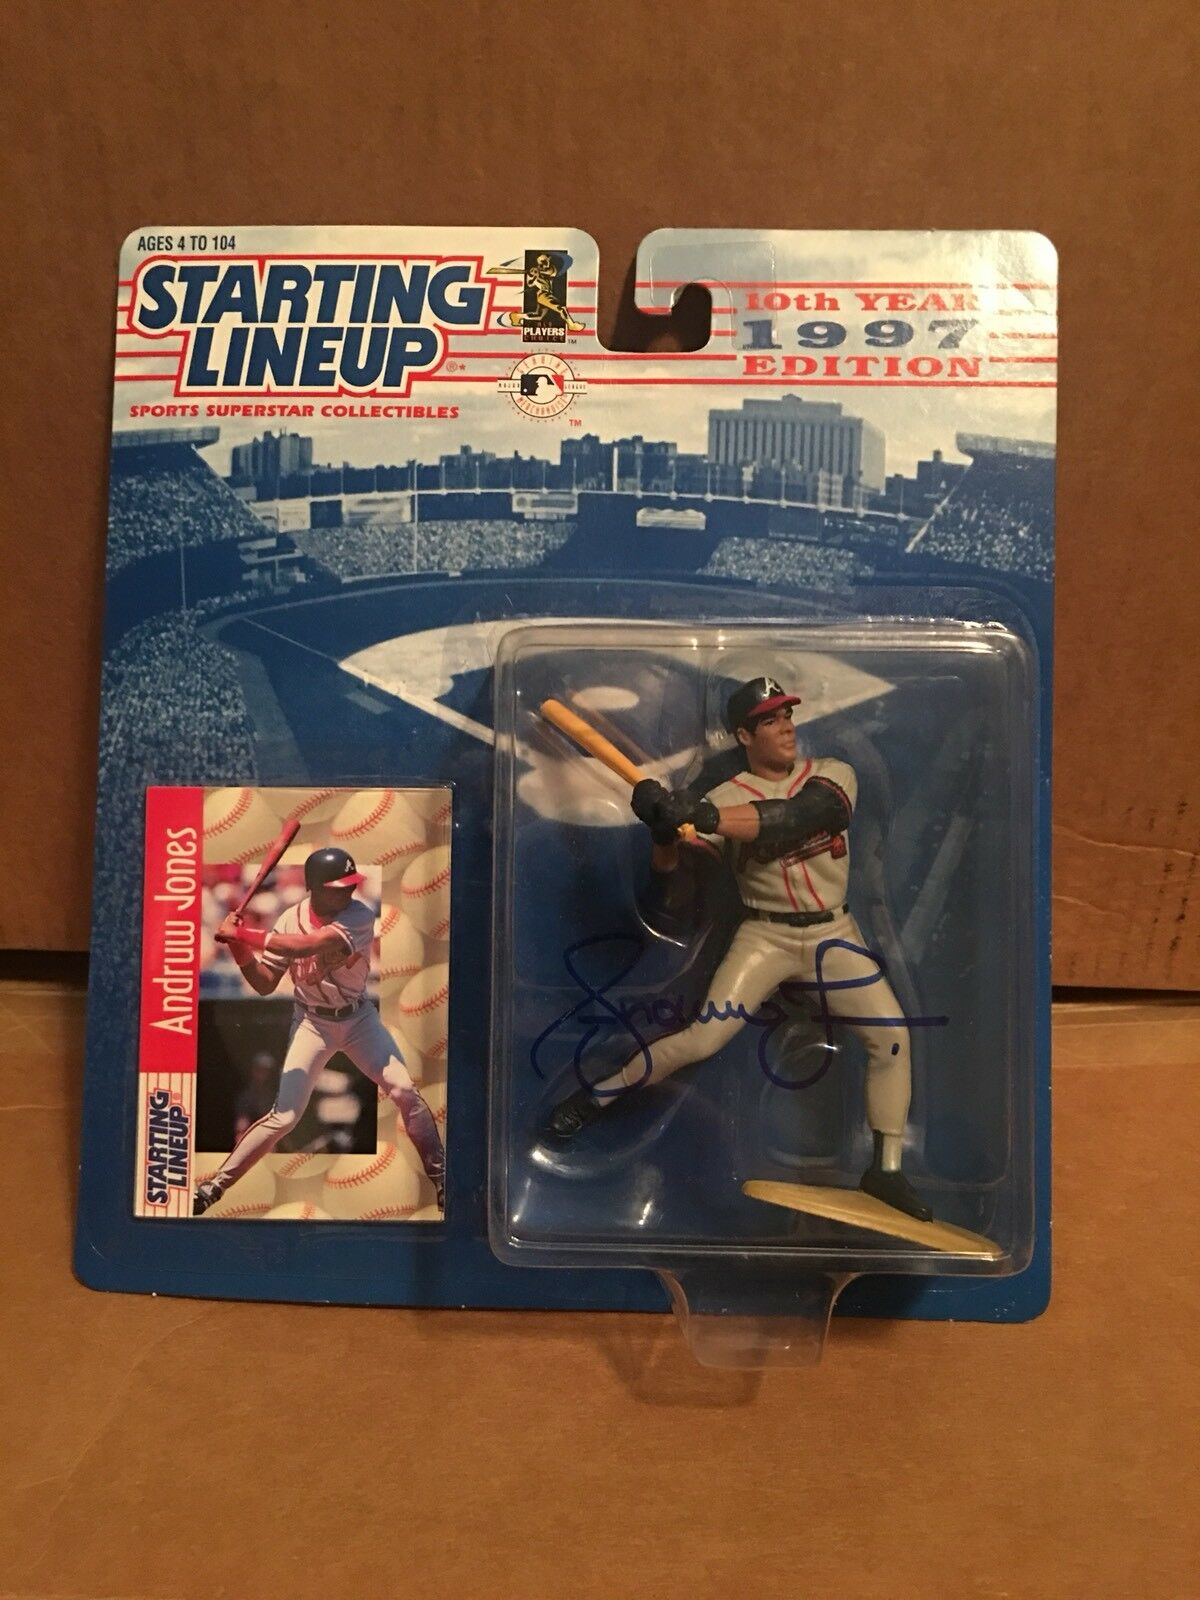 Andruw Jones Signed Signed Signed Starting Lineup 737dd8